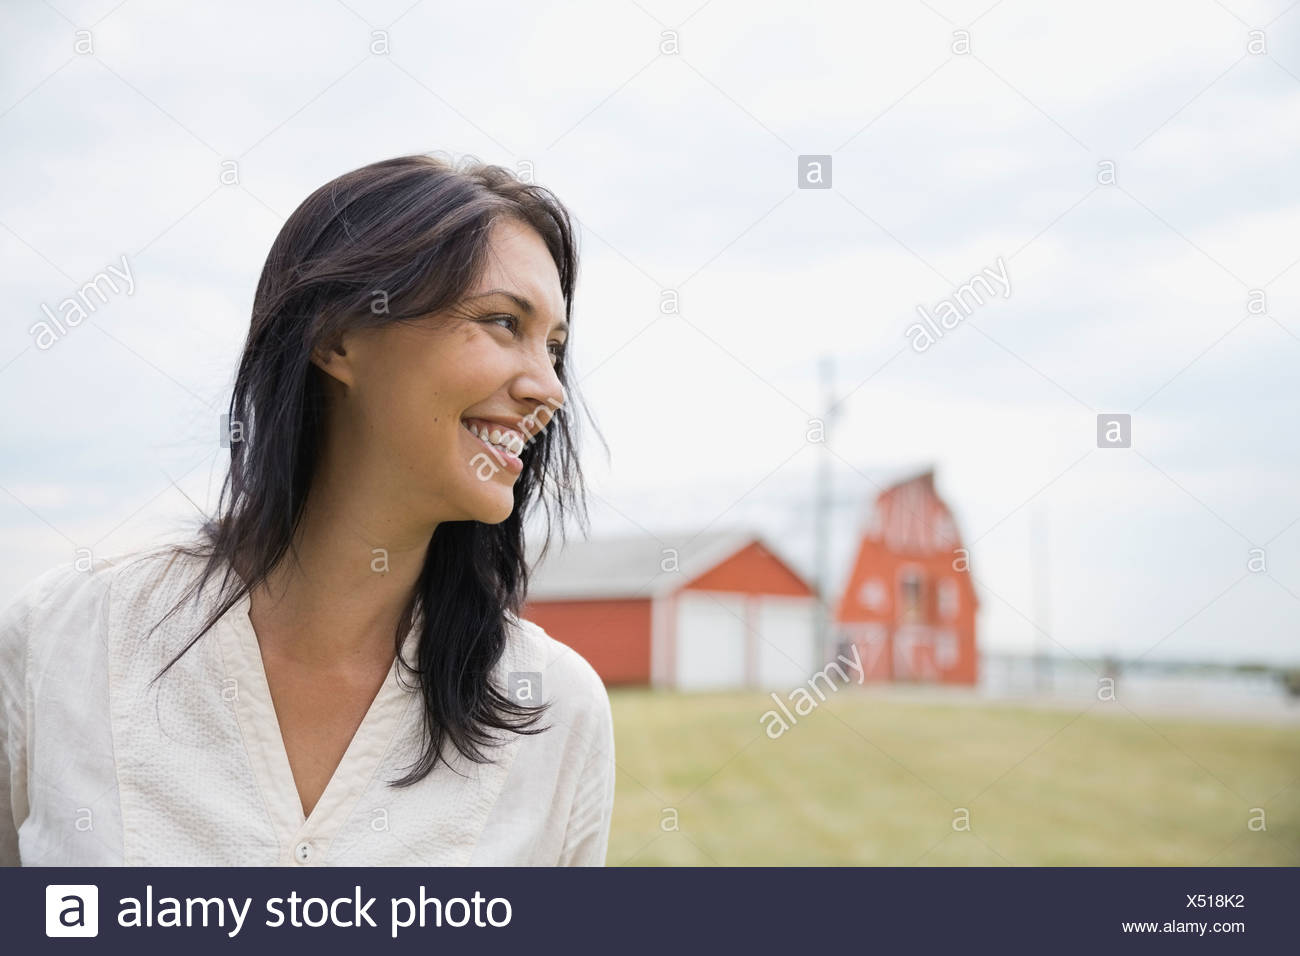 Portrait of smiling woman outdoors - Stock Image